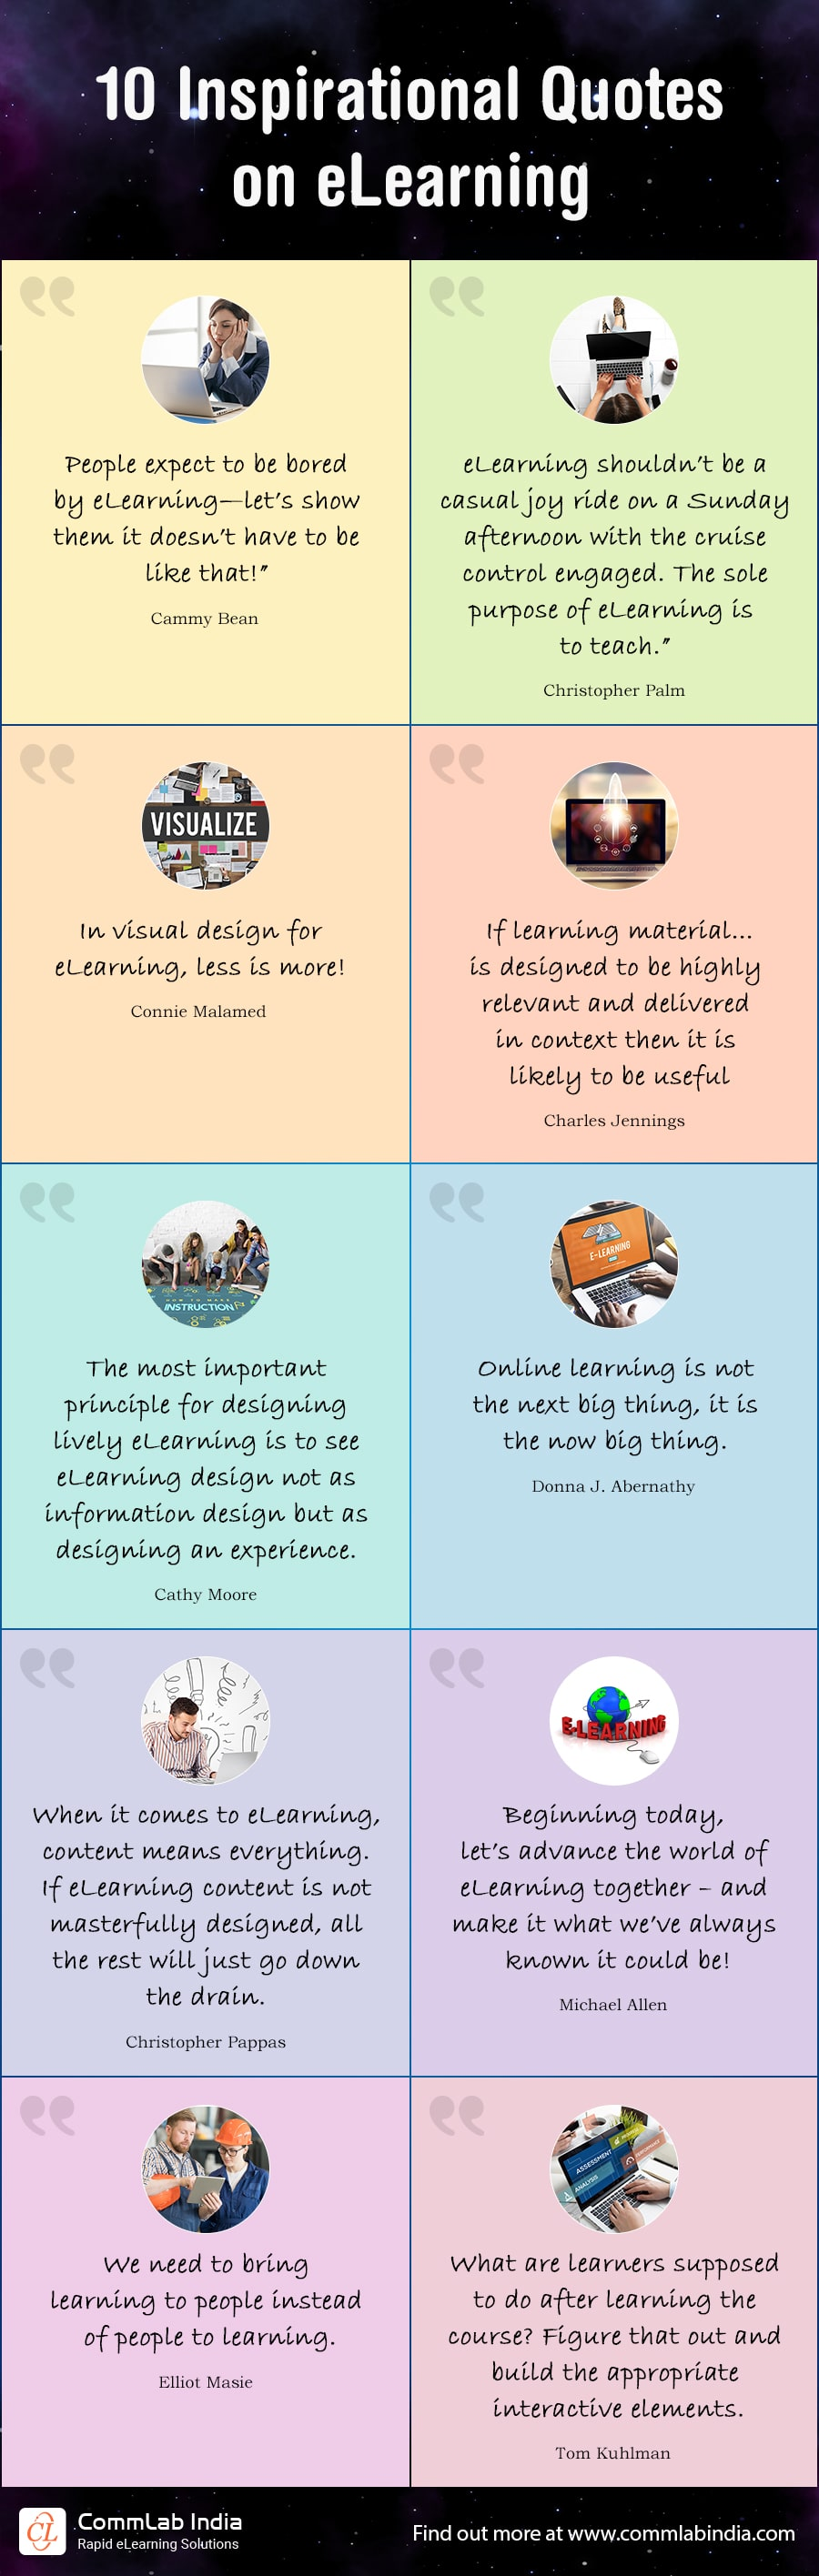 eLearning Quotes: Our Top 10 All-Time Favorites